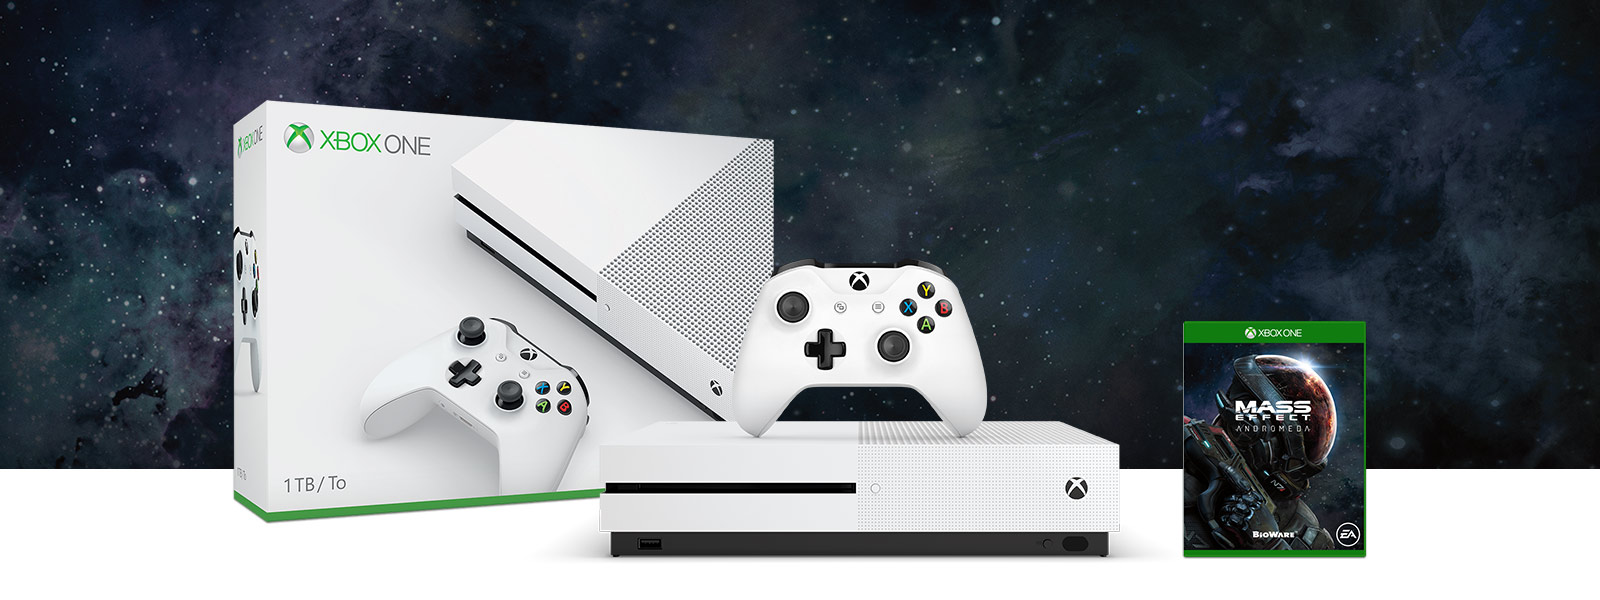 Xbox One S plus two additional games